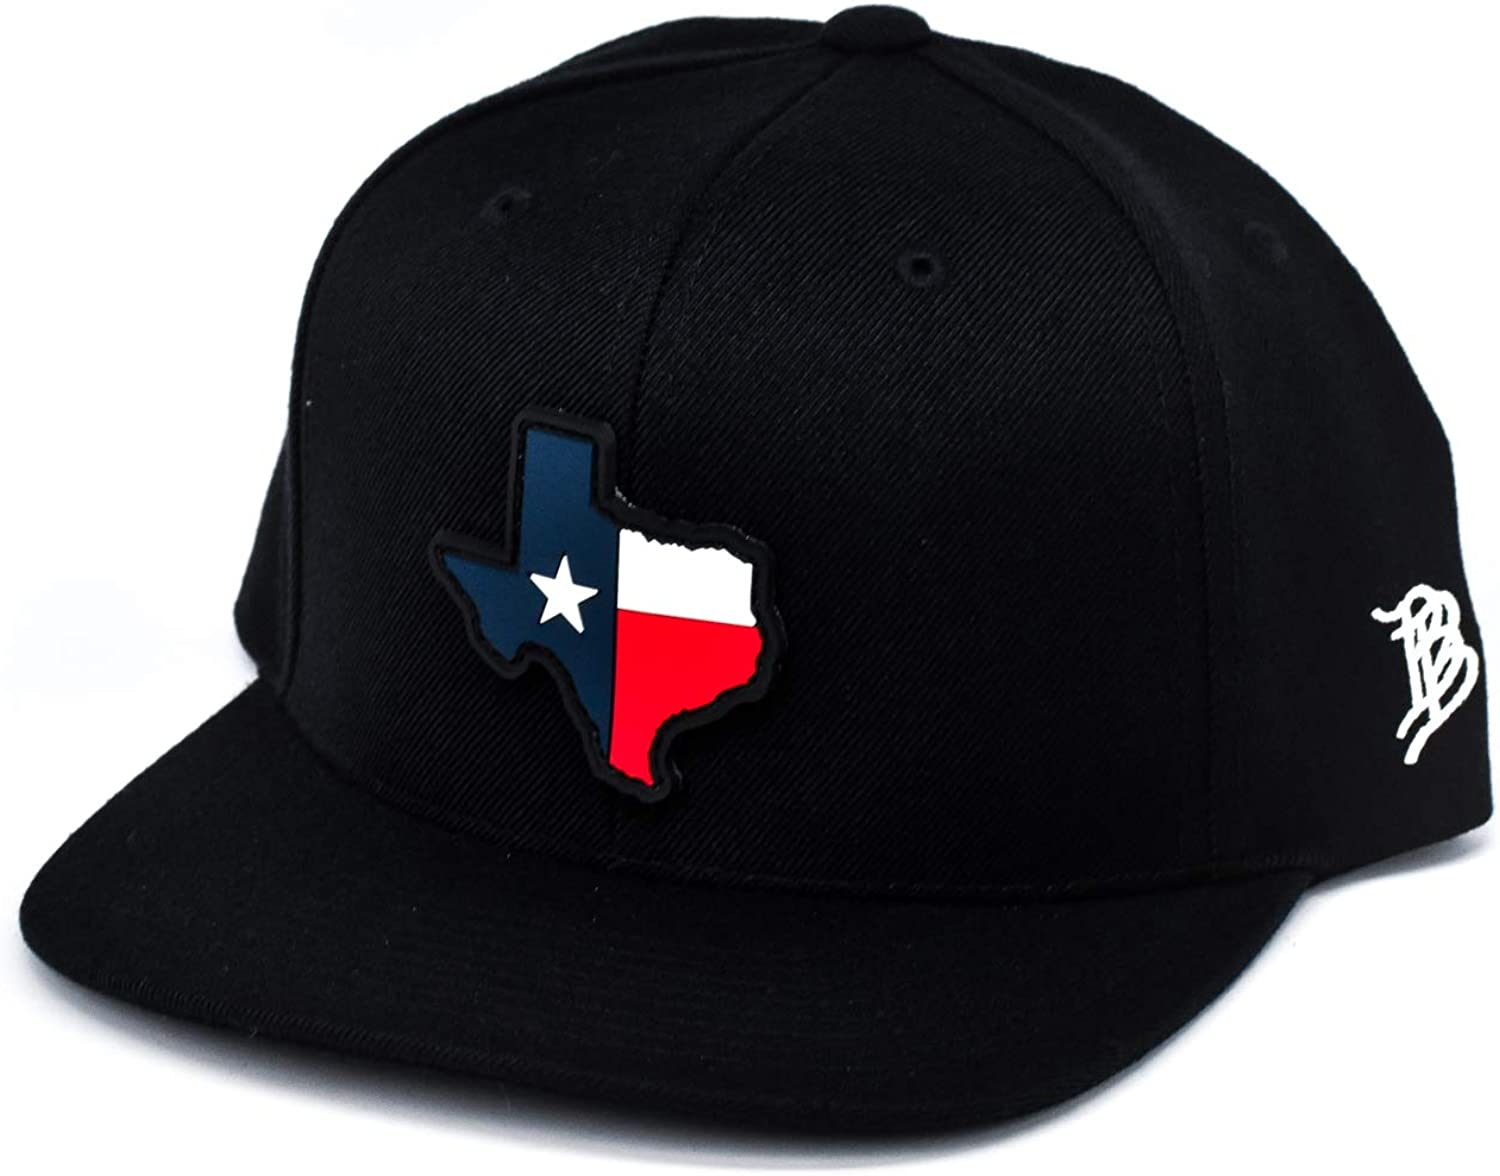 Branded Bills 'The 28 Rogue' Texas PVC Patch Classic Snapback Hat - One Size Fits All